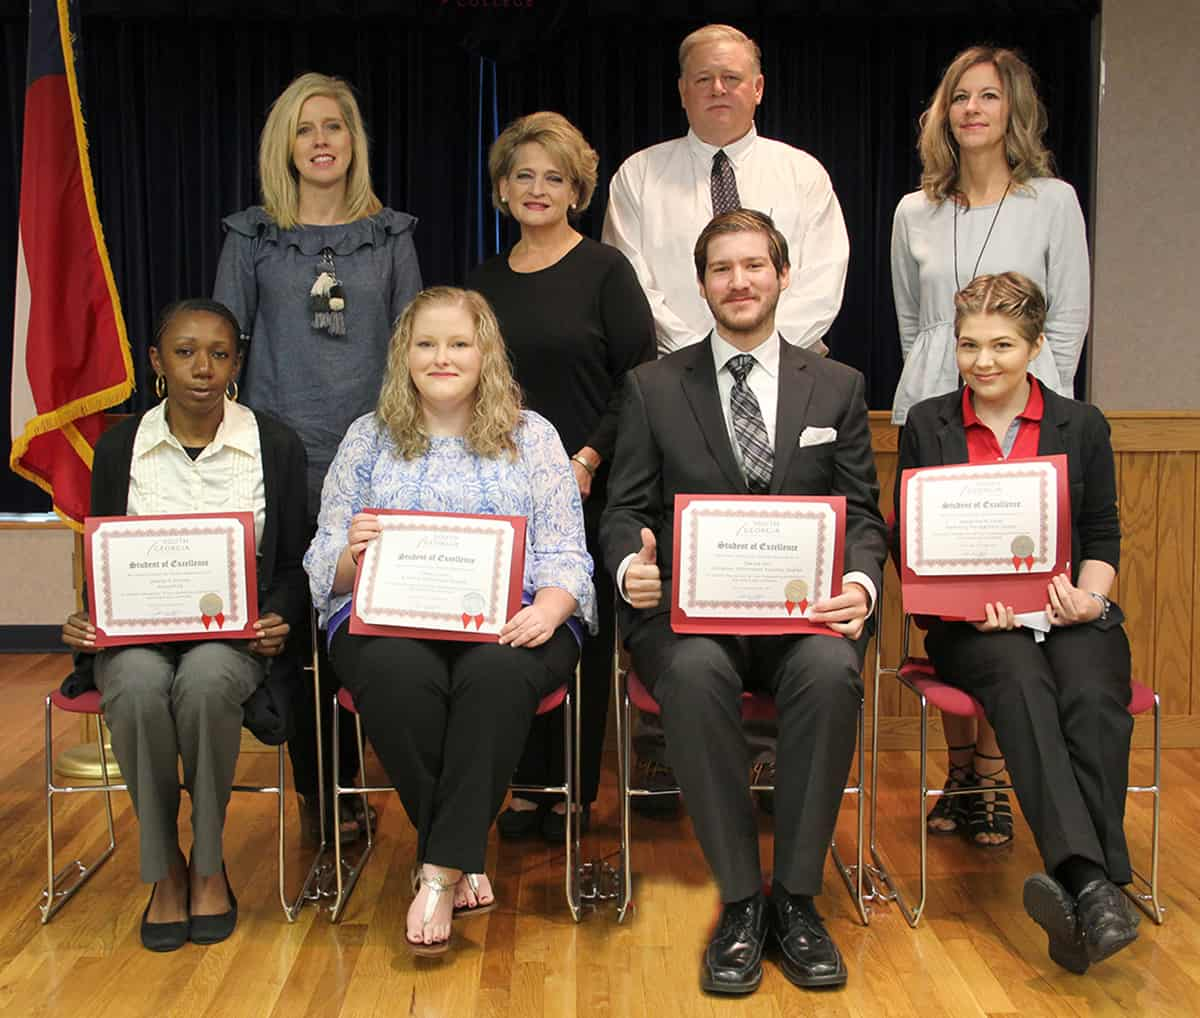 Student of Excellence nominees sit in chairs in front of their nominating instructors. Seated from left to right are: Desiray Kenney, Callie Collier, Dakota Hall, and Alexandra Joiner. Standing left to right: Teresa Jolly, Karen Bloodworth, Randy Greene and Lisa Penton.